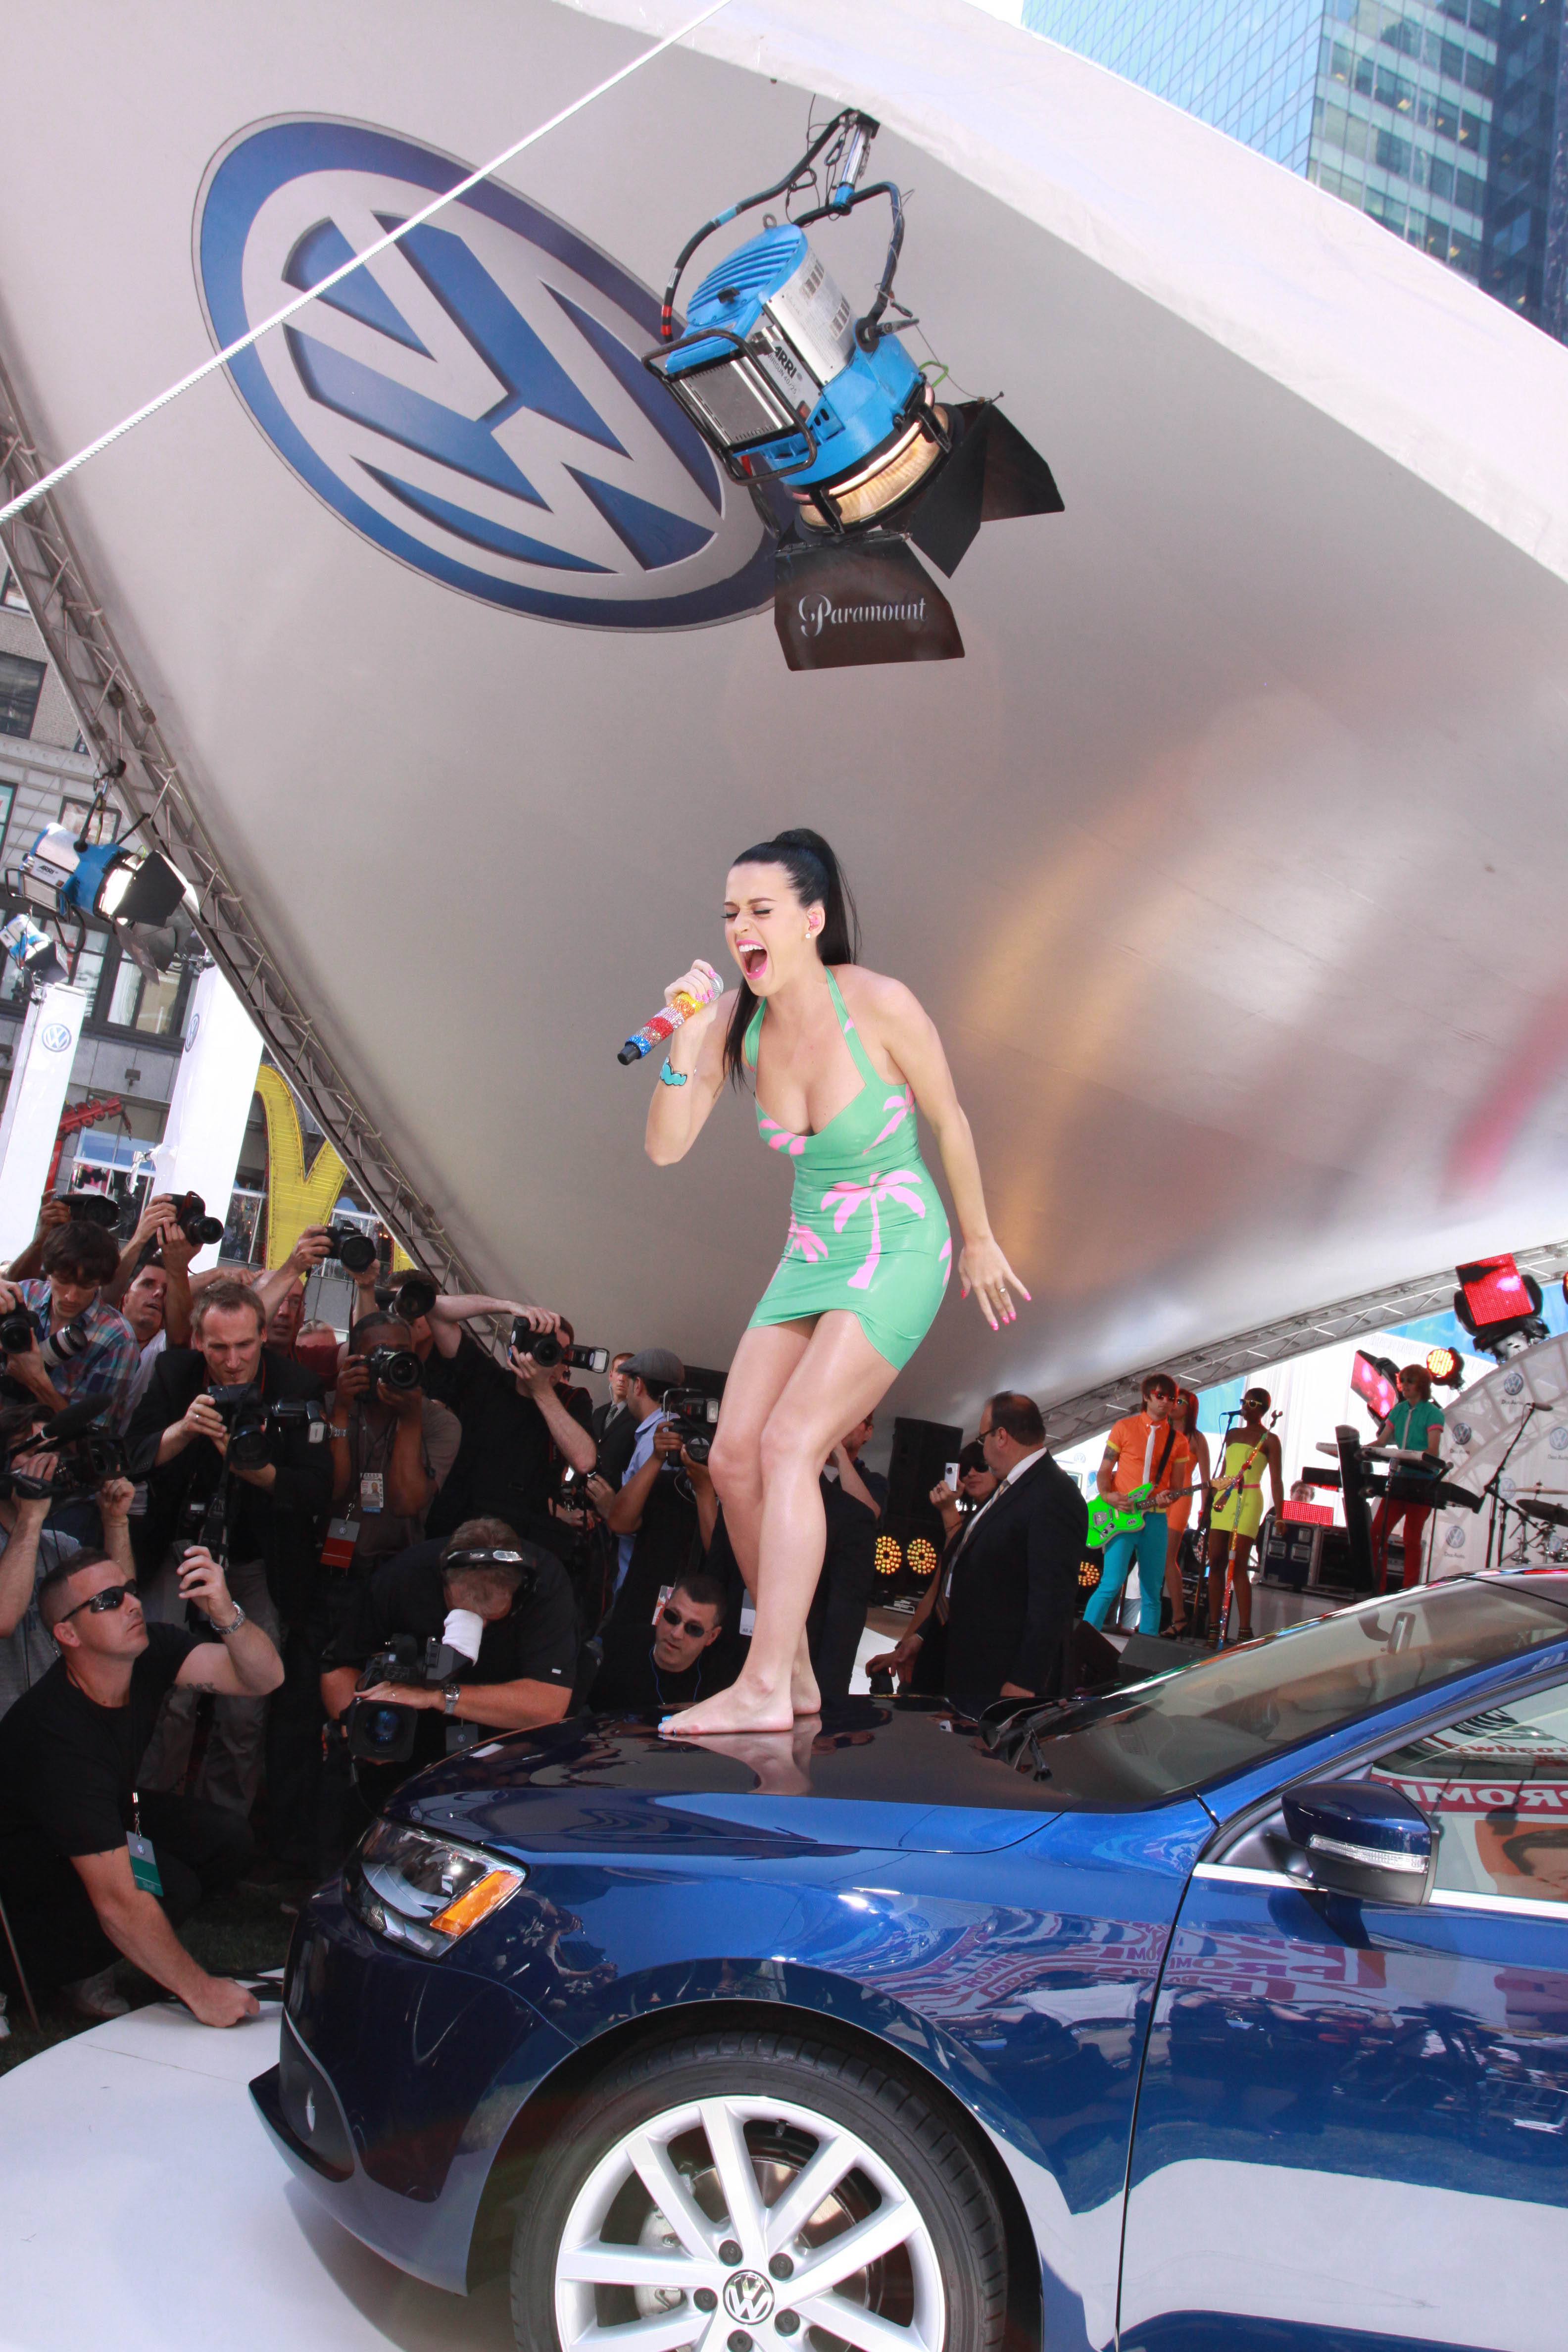 katy-perry-at-volkswagen-times-square-event